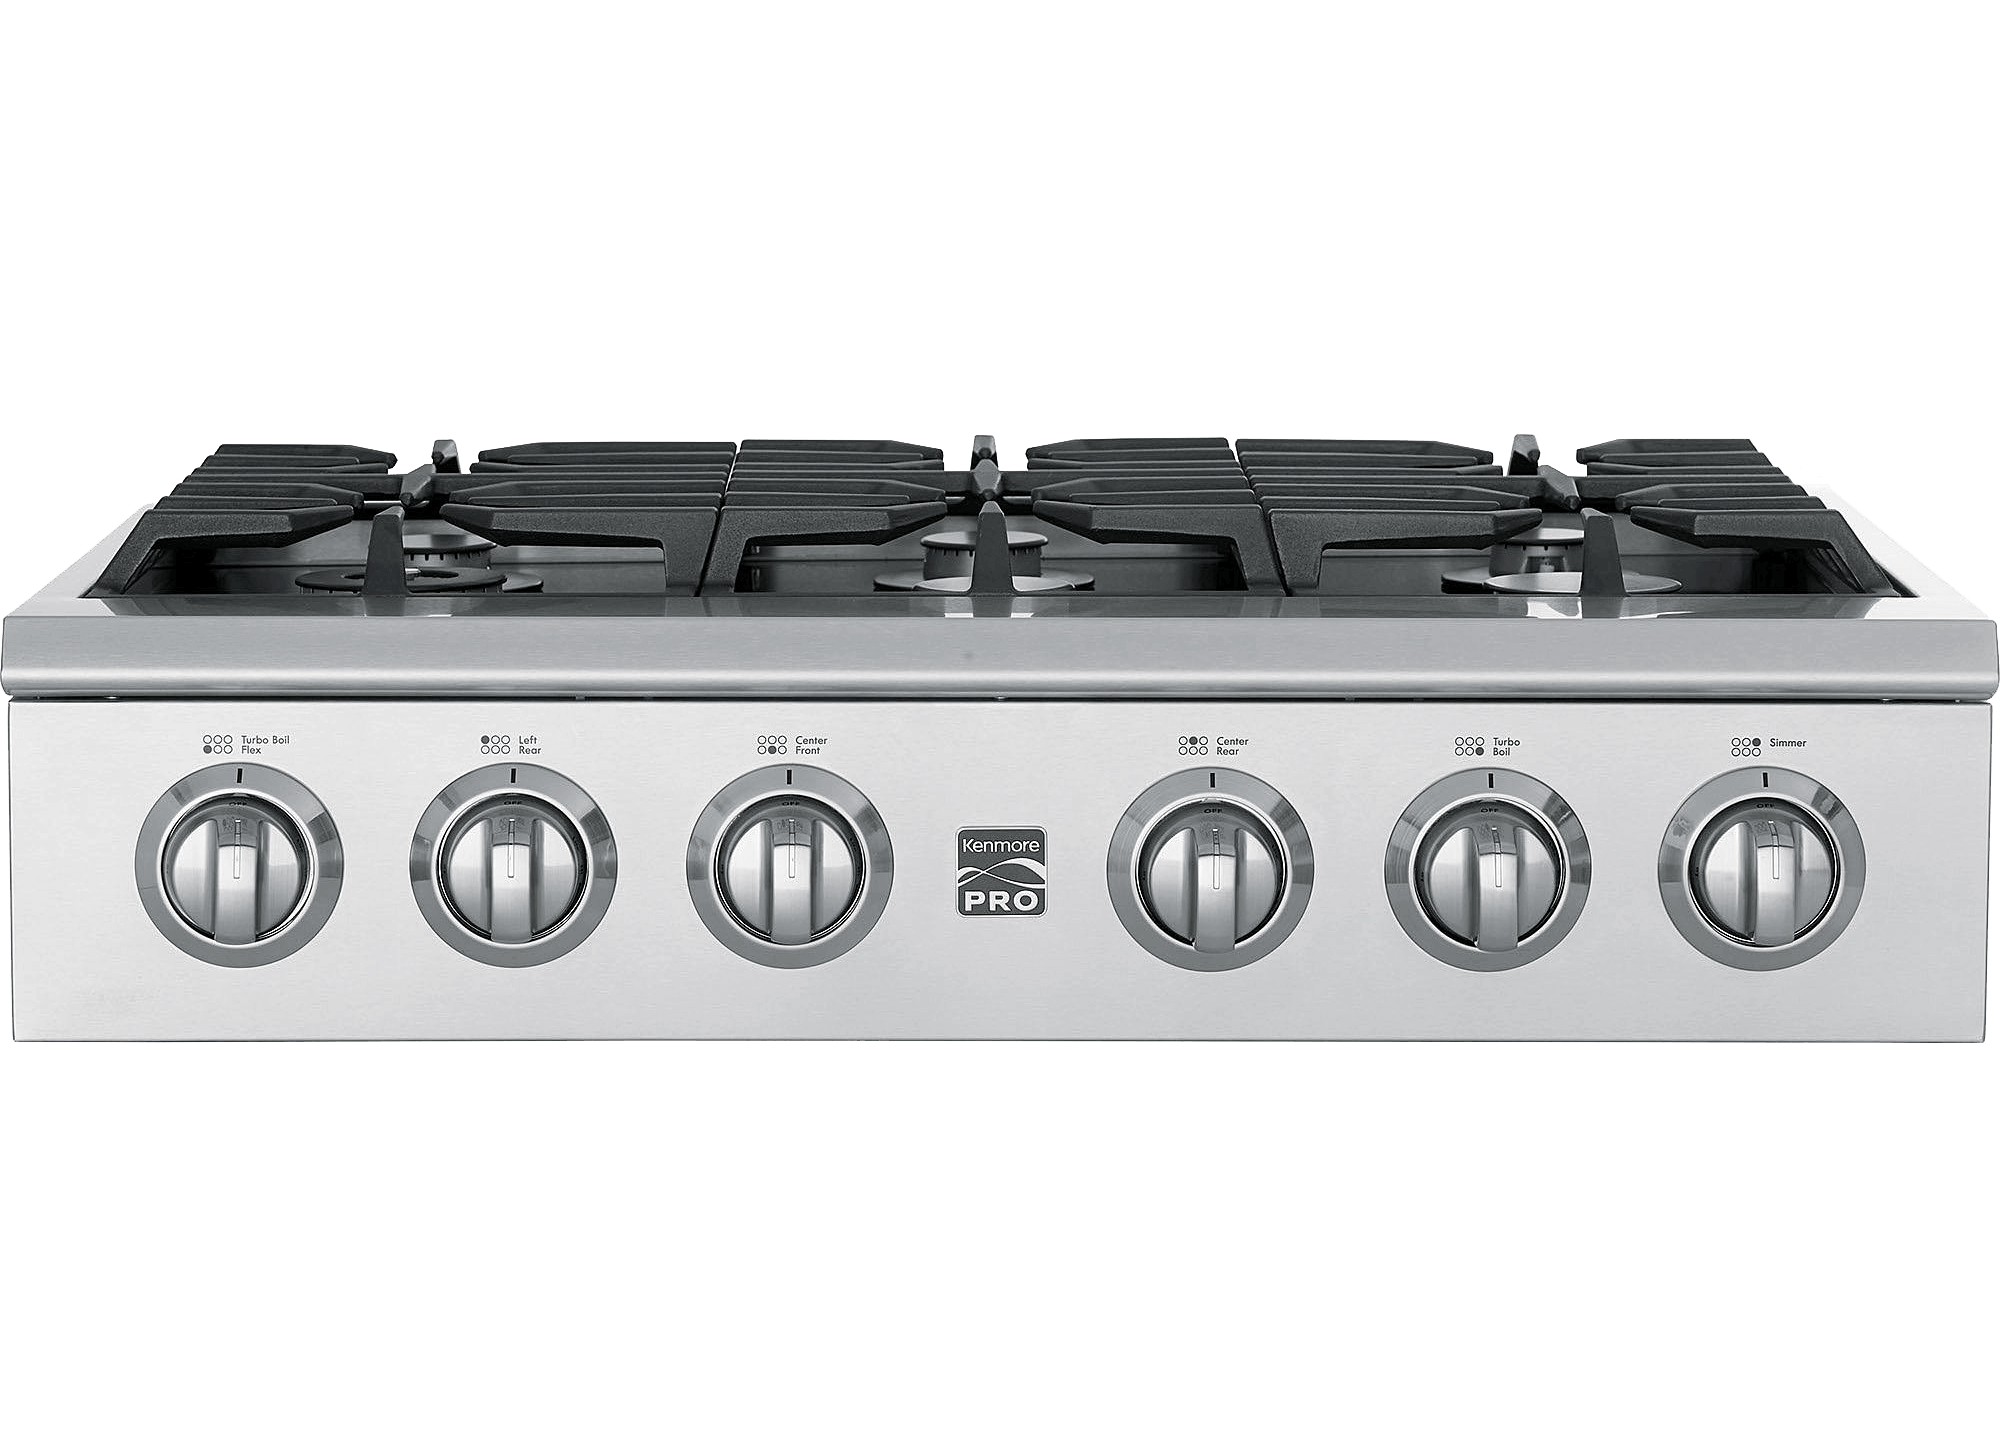 Cooktops Gas Electric And Downdraft Kenmore